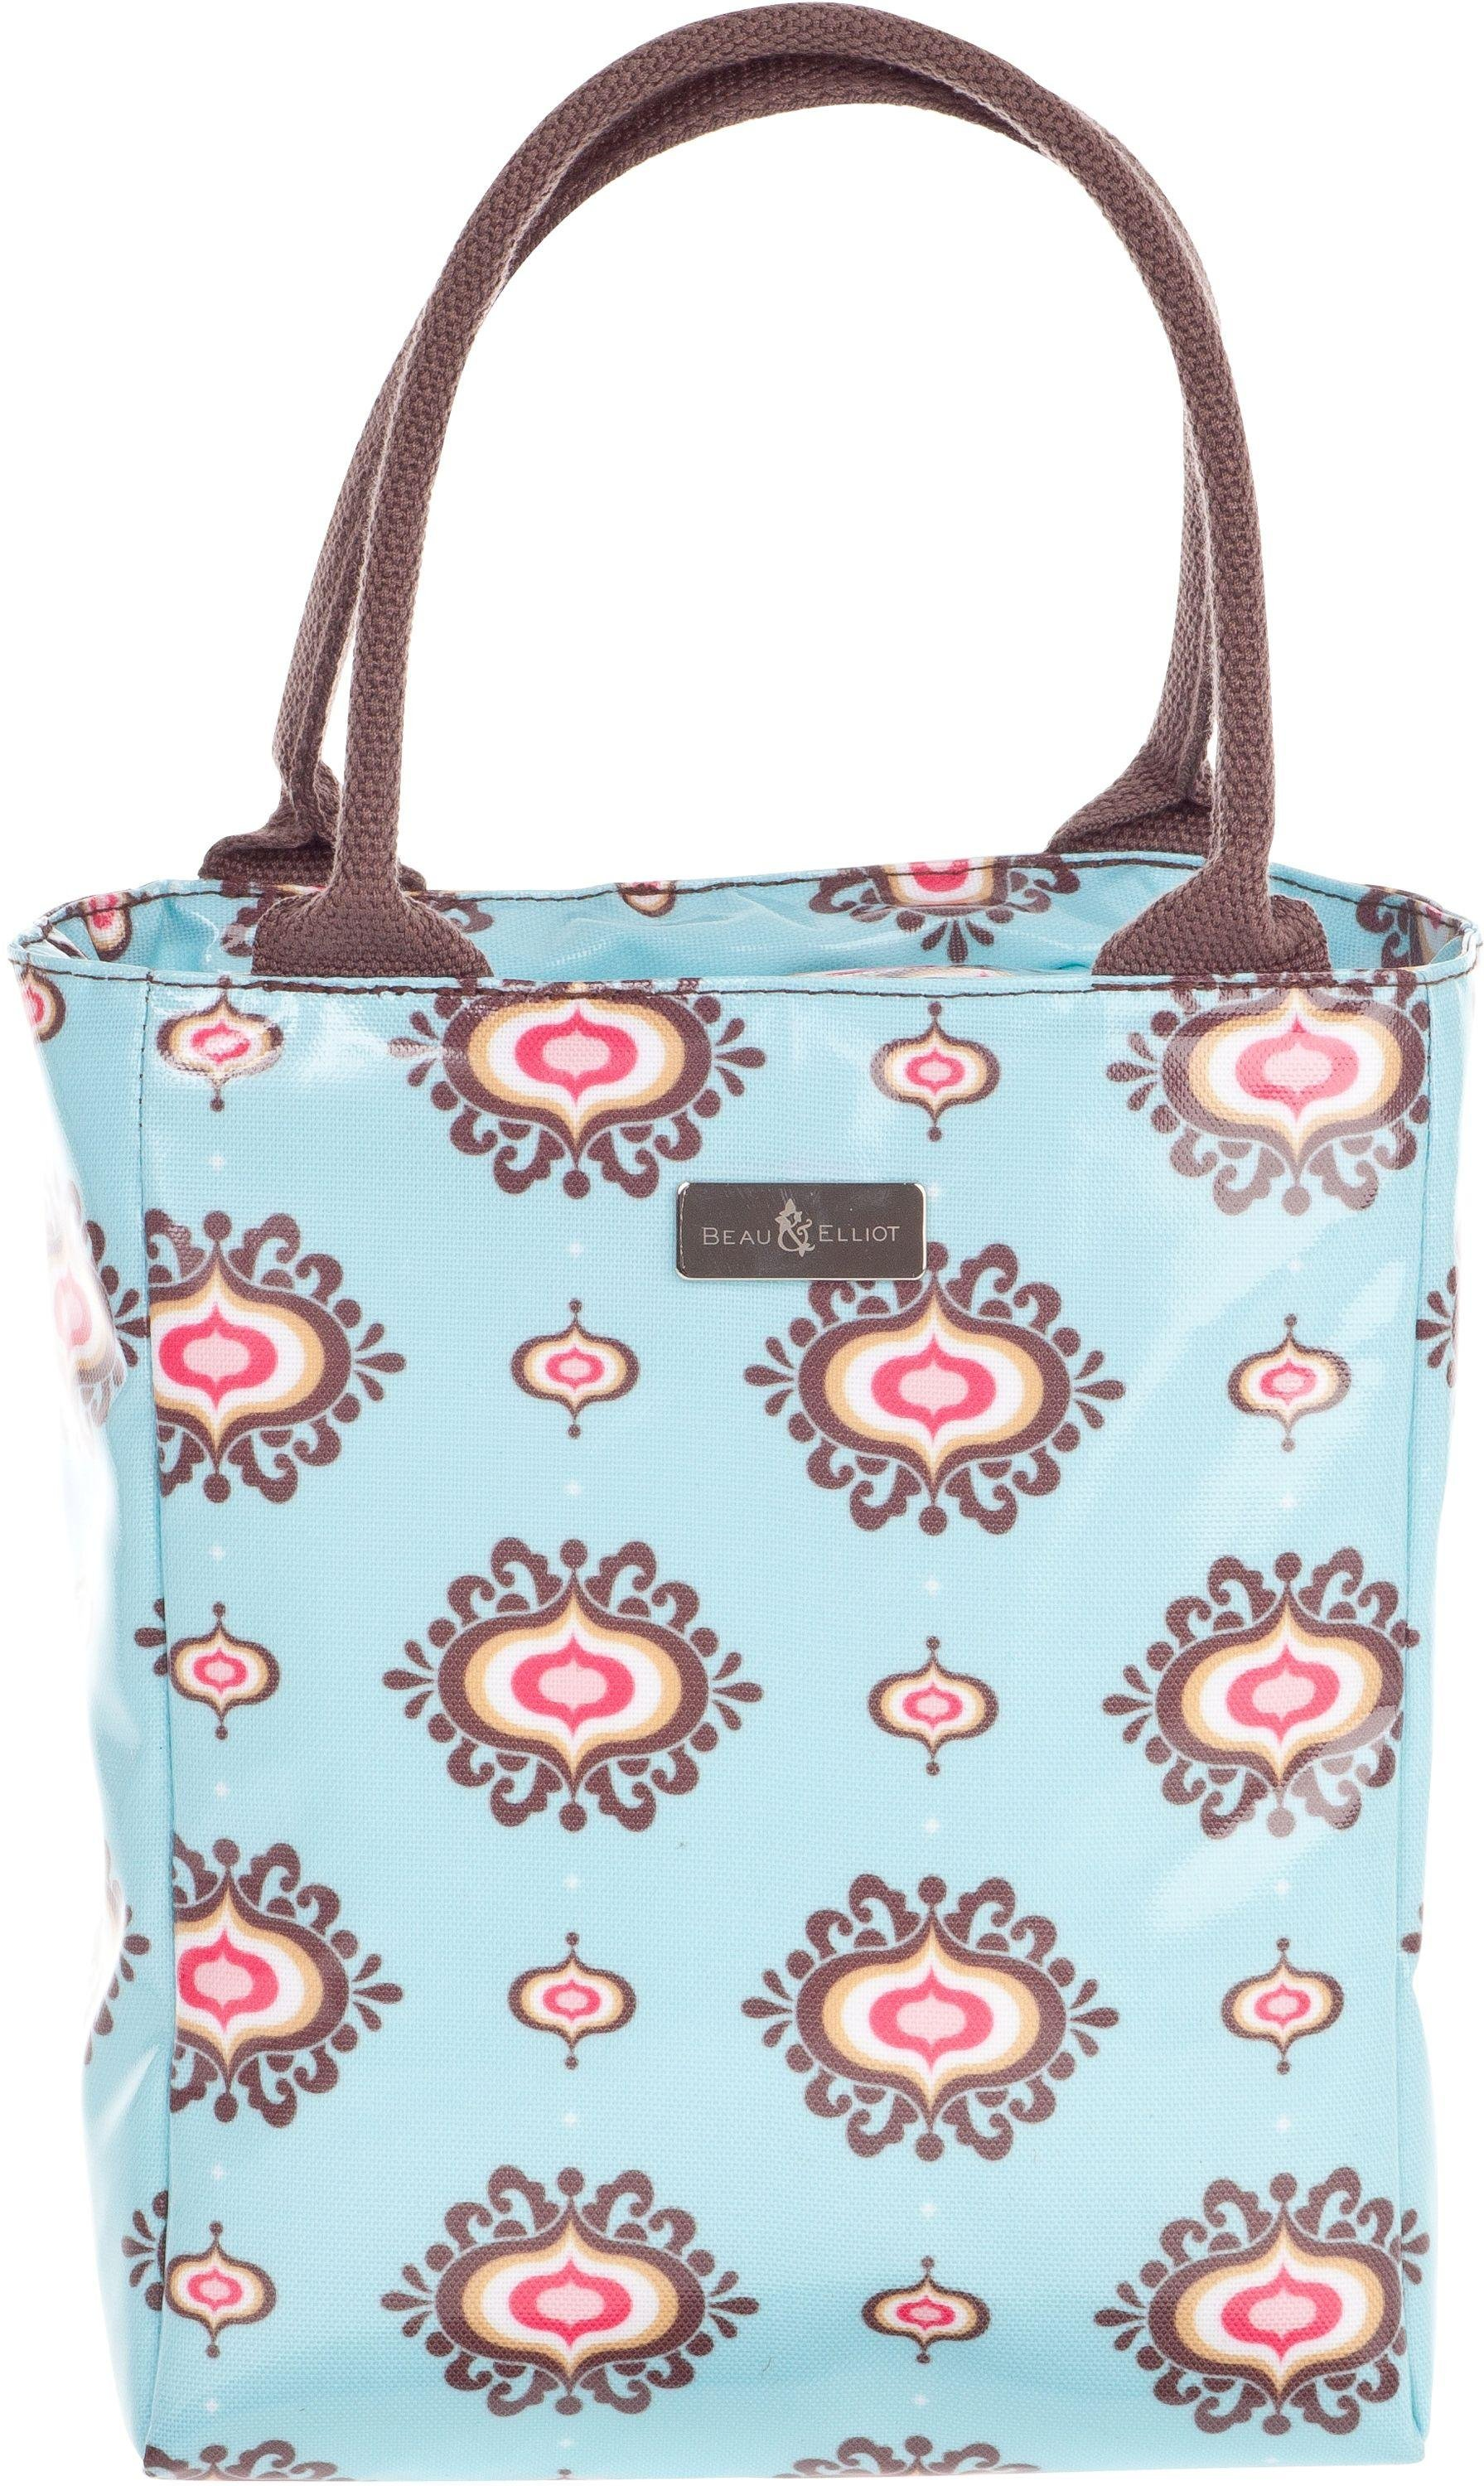 Image of Beau and Elliot - Filigree Insulated Lunch Tote - Blue